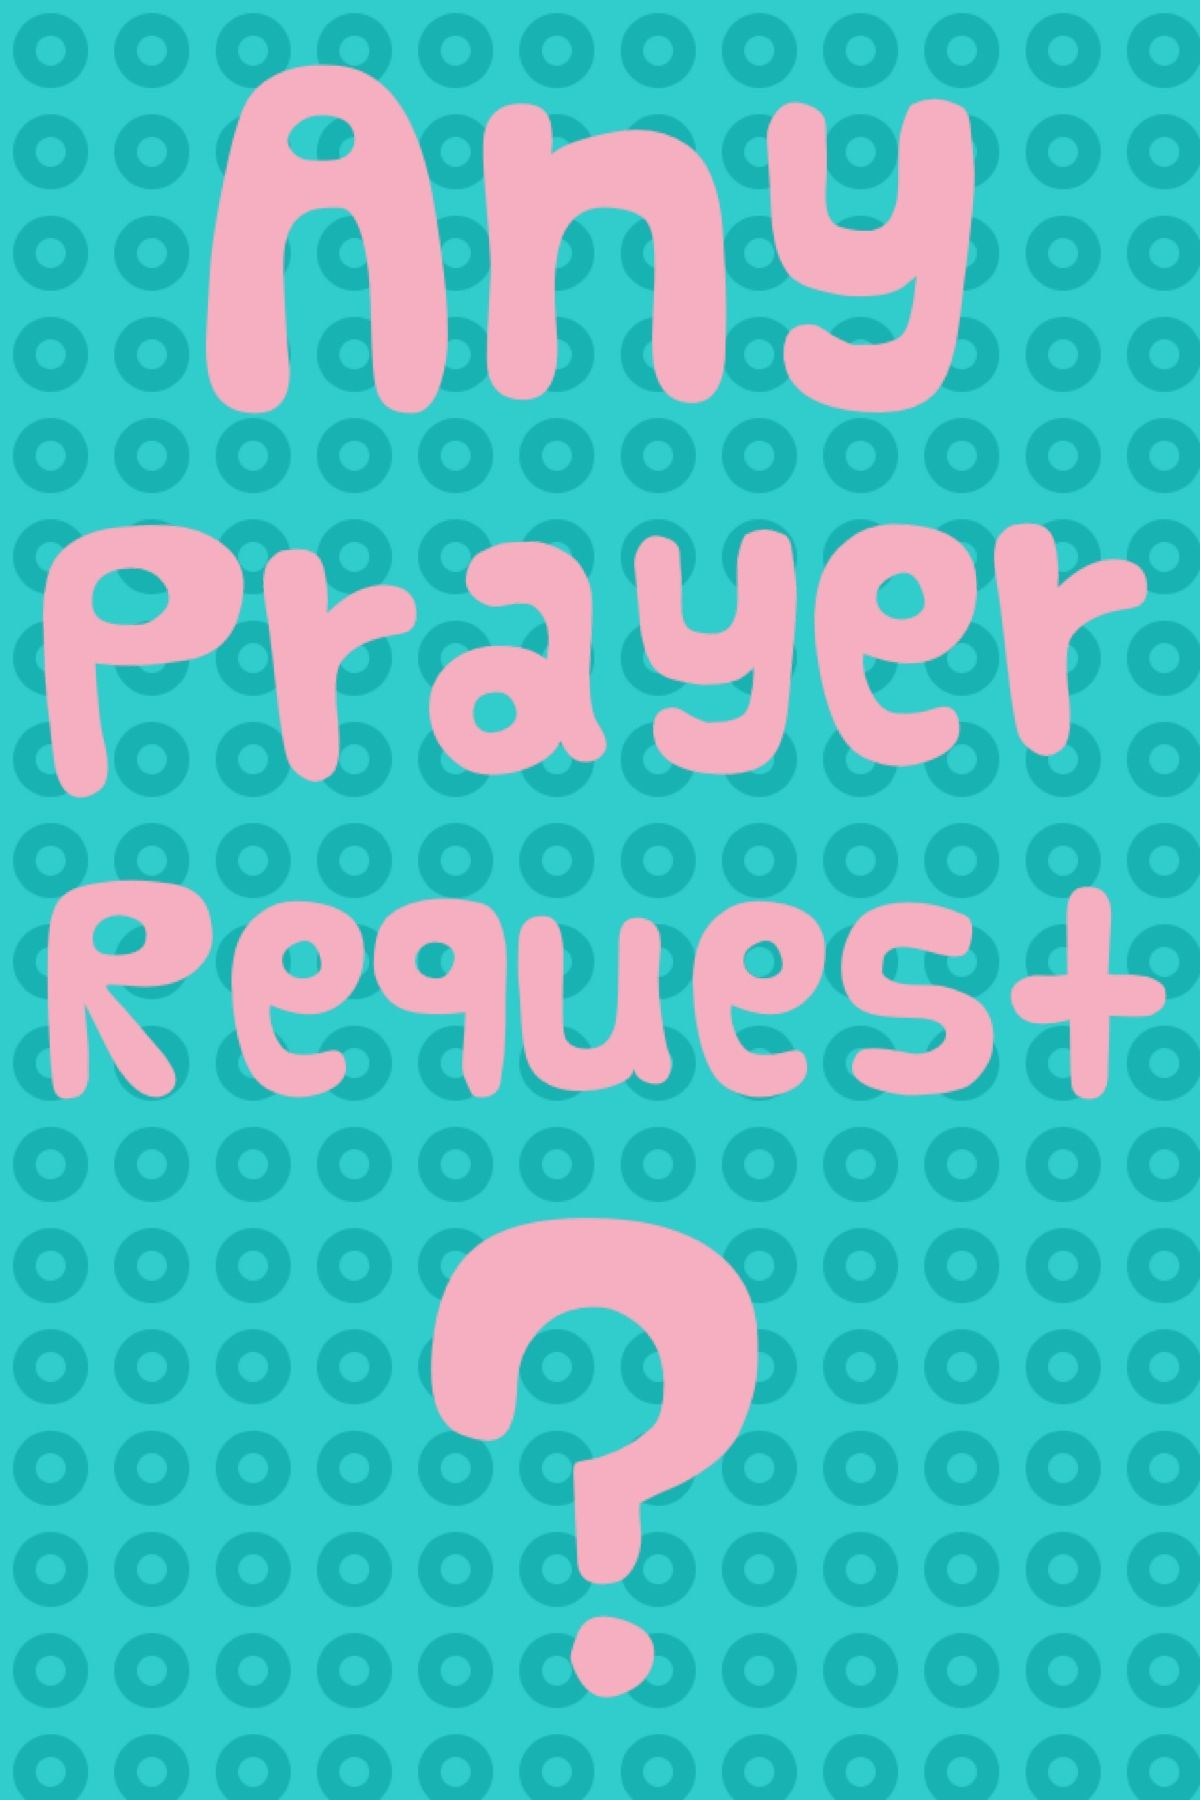 Do you guys have any prayer request? If it to personal just